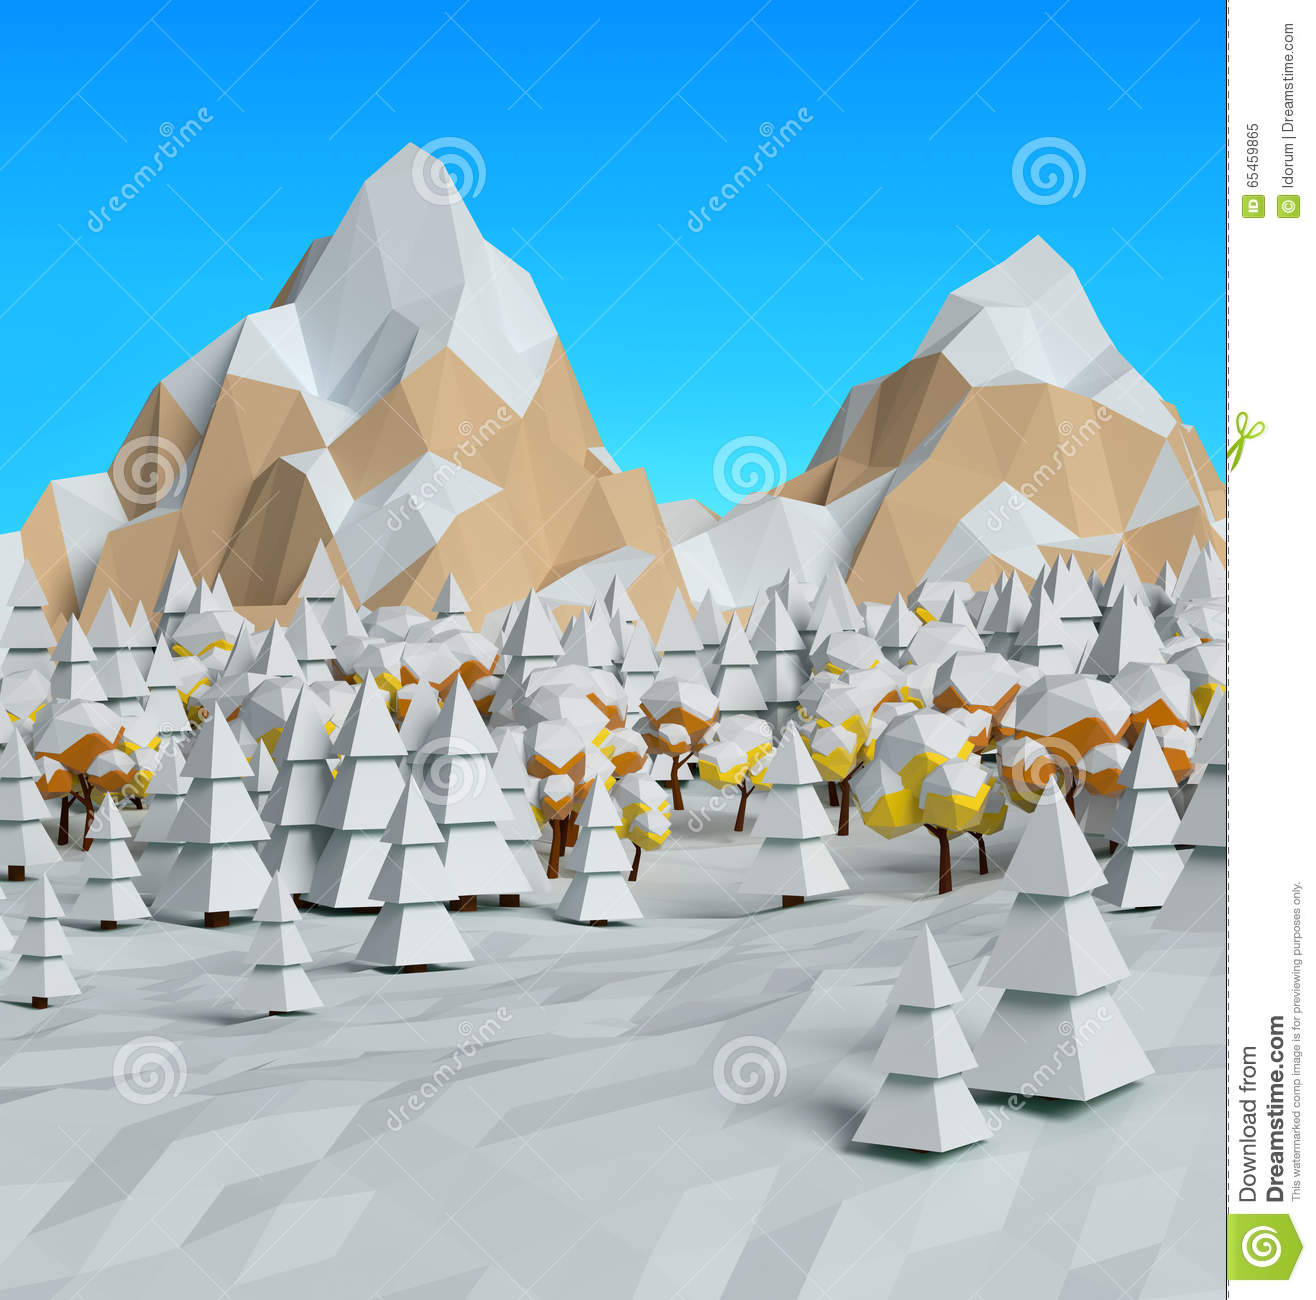 More similar stock images of 3d landscape with fall tree - Low Poly Winter Frosty Sunny View 3d Royalty Free Stock Photo